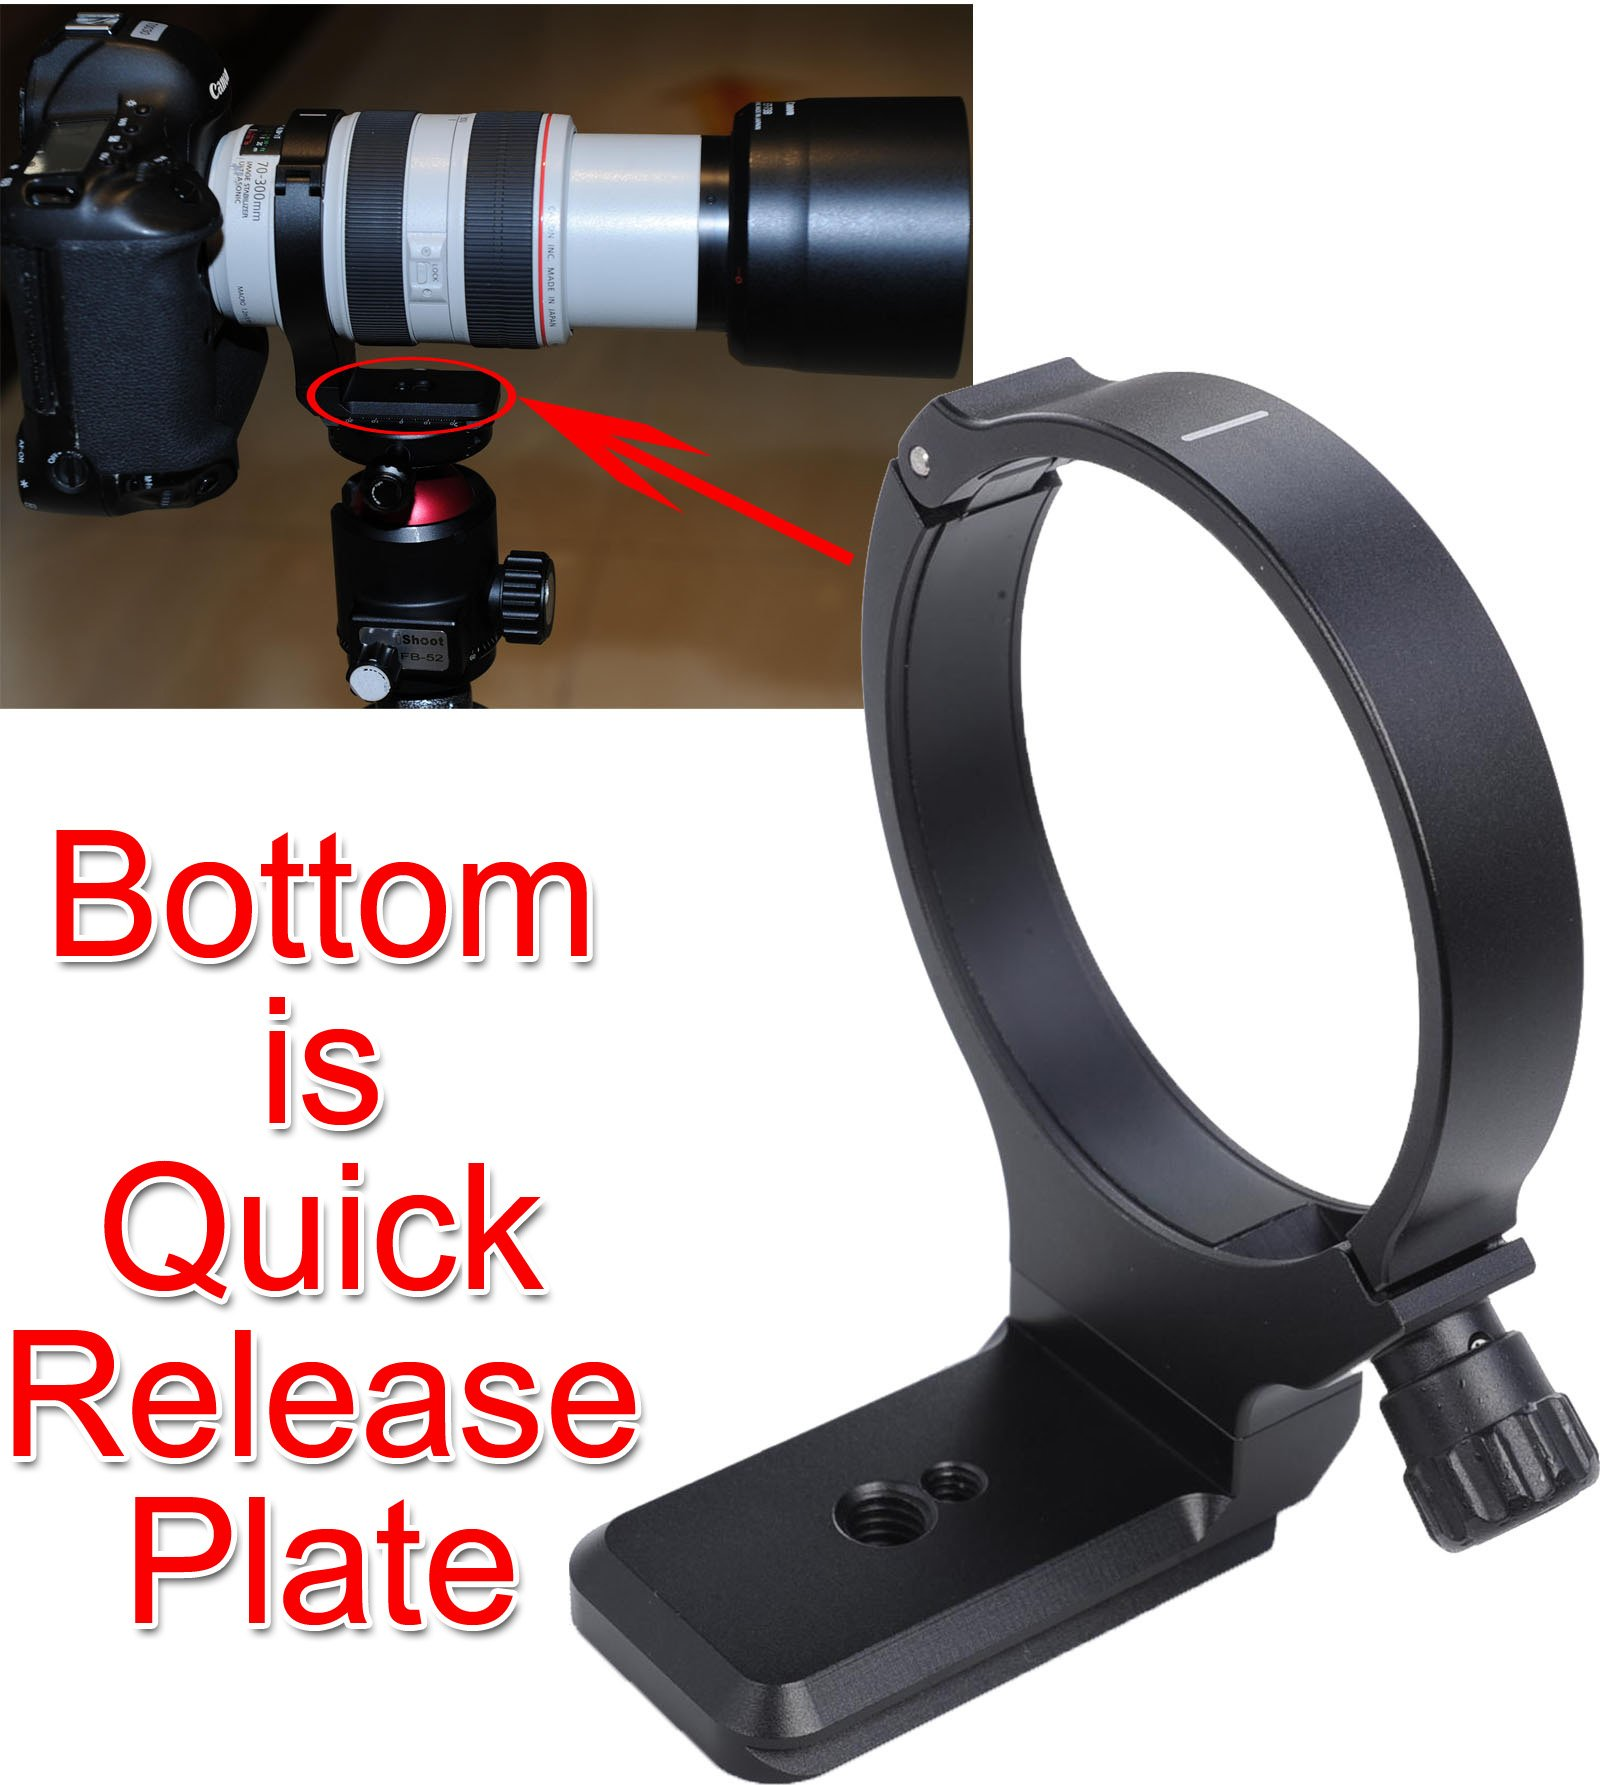 CNC Precisely Machined Metal Lens Support Collar Tripod Mount Ring for Canon EF 28-300mm f/3.5-5.6L IS USM, Canon EF 70-300mm f/4-5.6L IS USM -Bottom is Camera Quick Release Plate